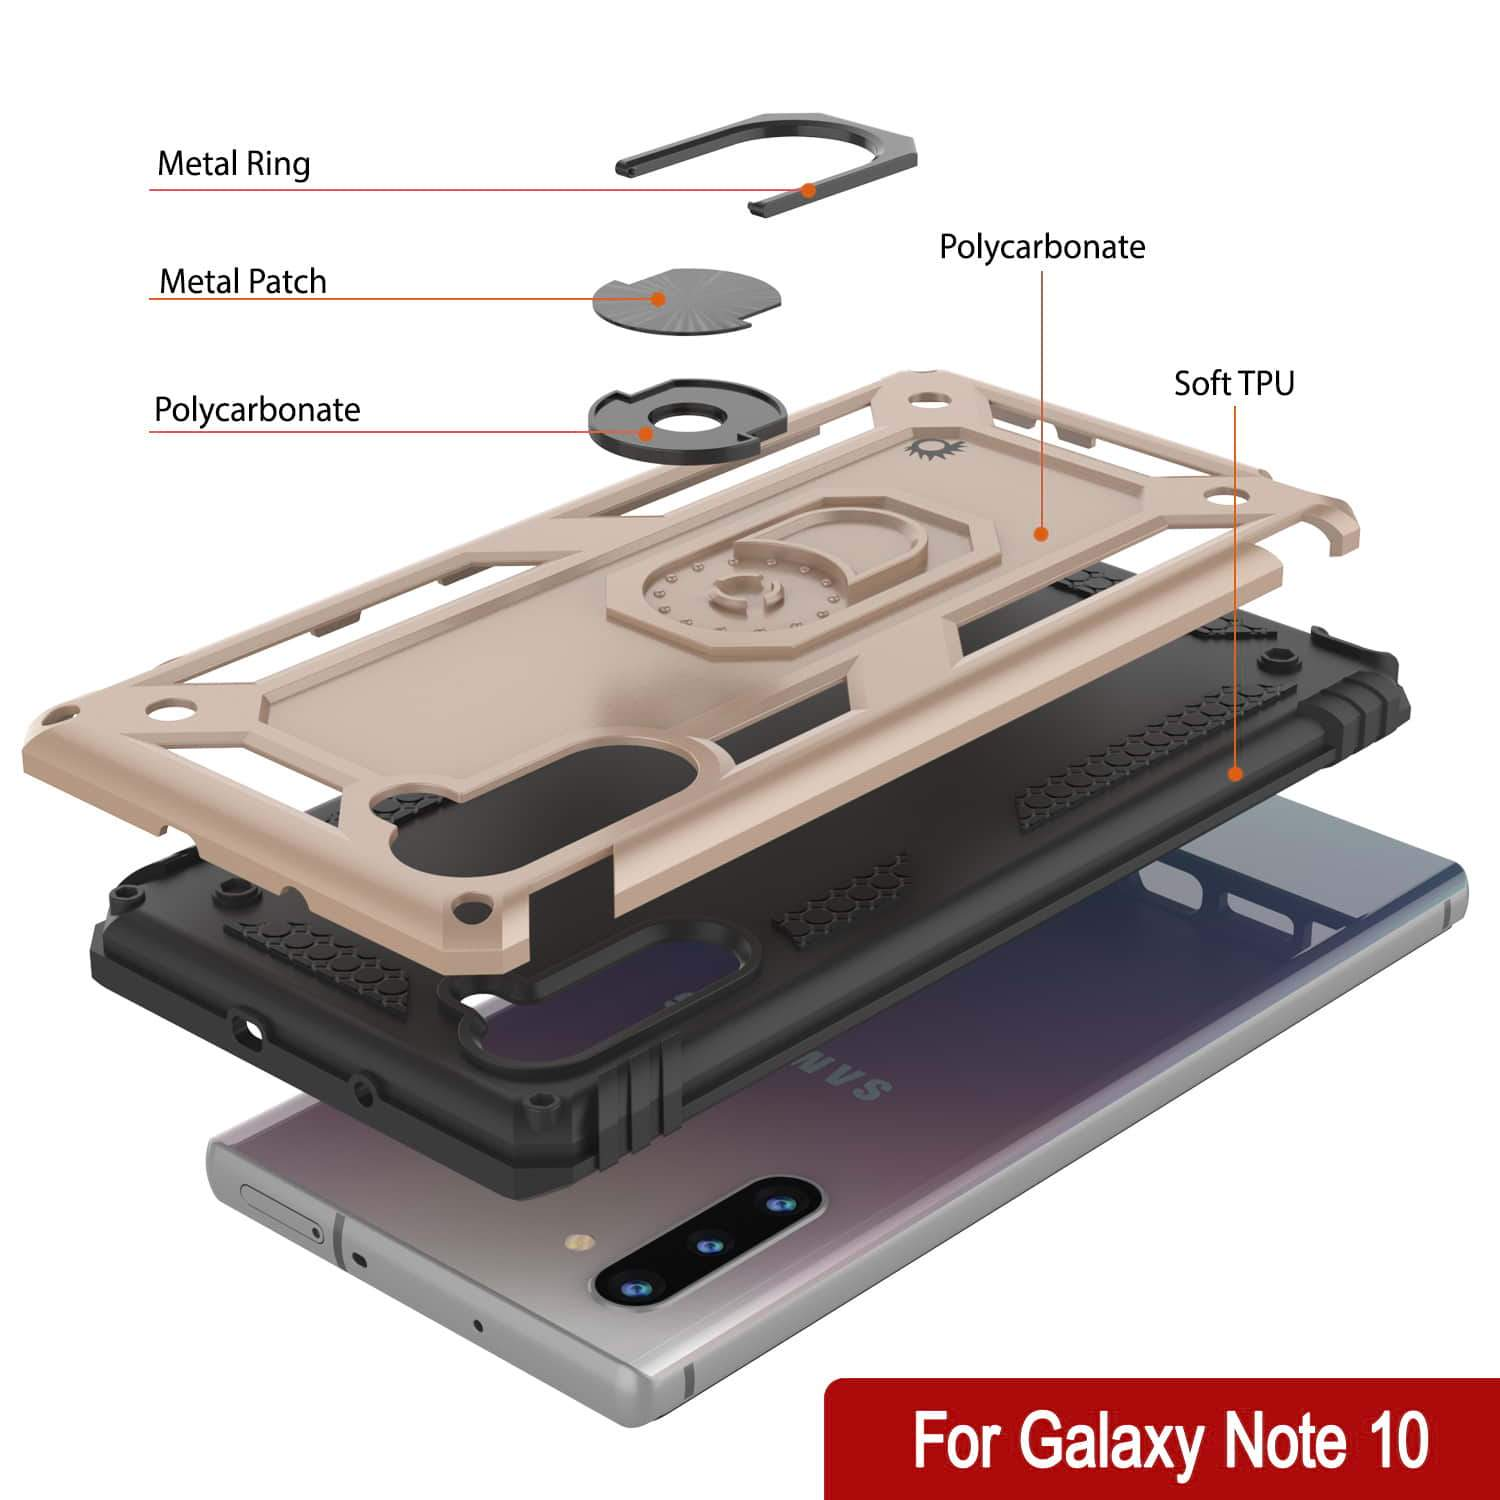 Galaxy Note 10 Punkcase Armor Military Case Gold